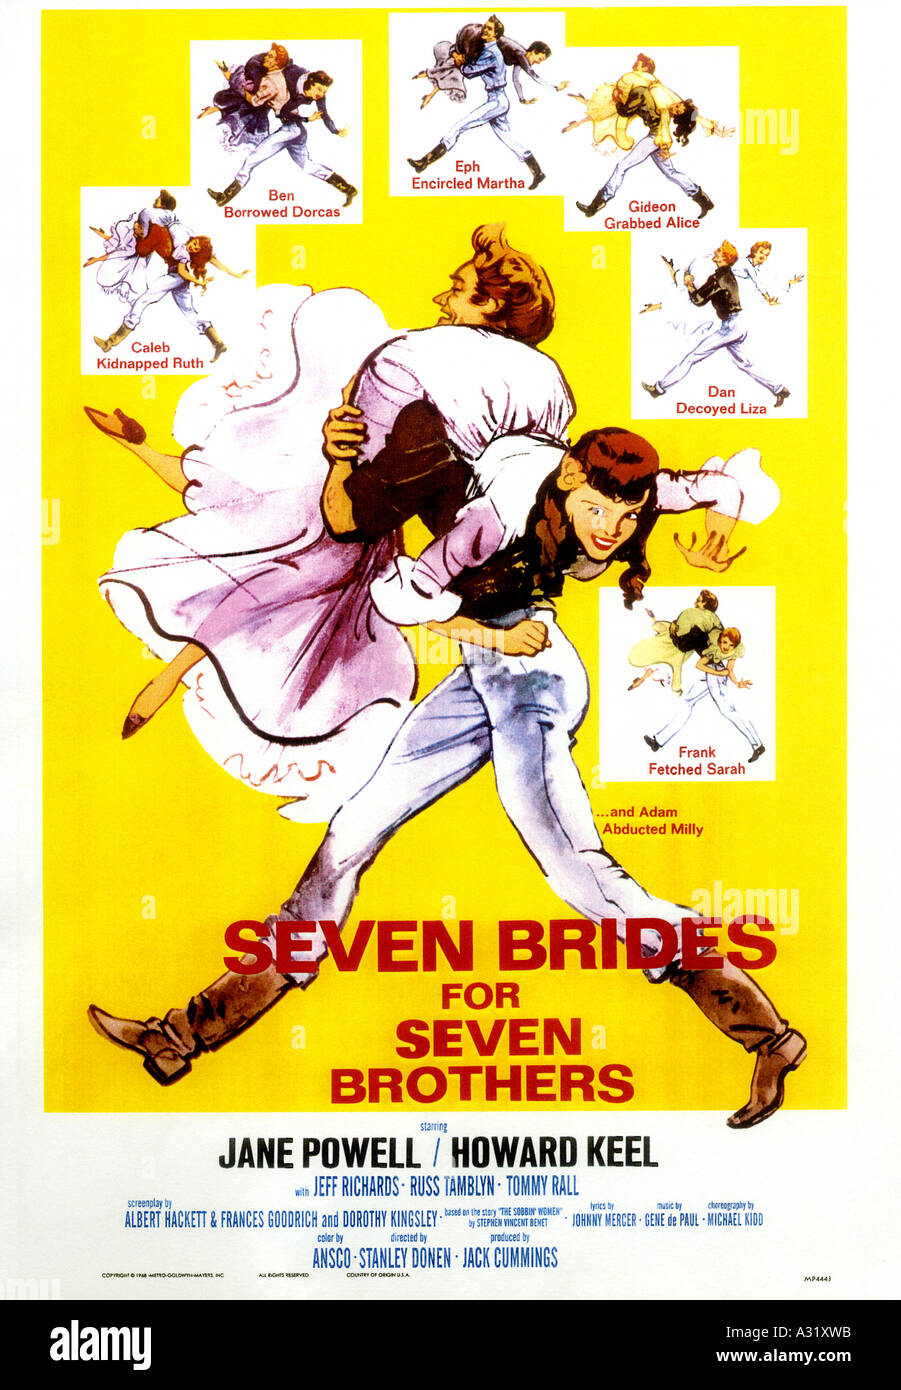 SEVEN BRIDES FOR SEVEN BROTHERS - Stock Image